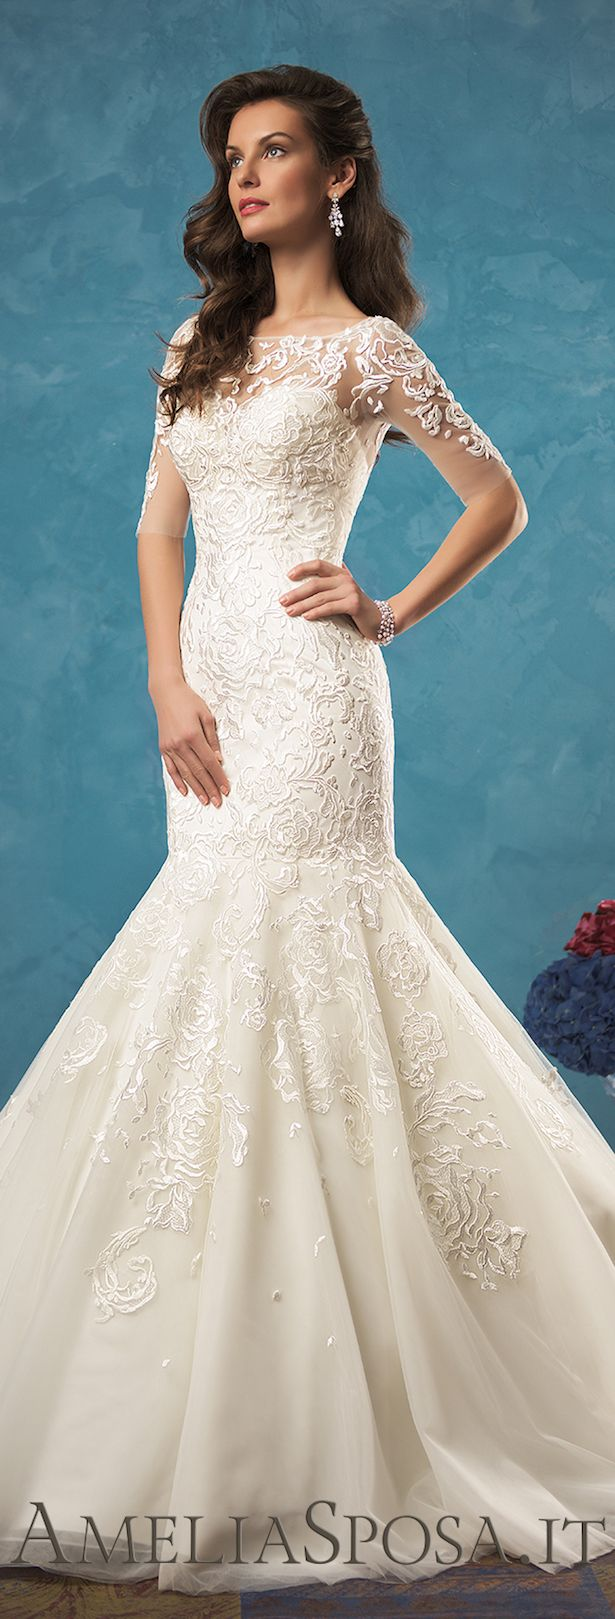 17753 best Wedding dresses - Bruidsjurken images on Pinterest ...